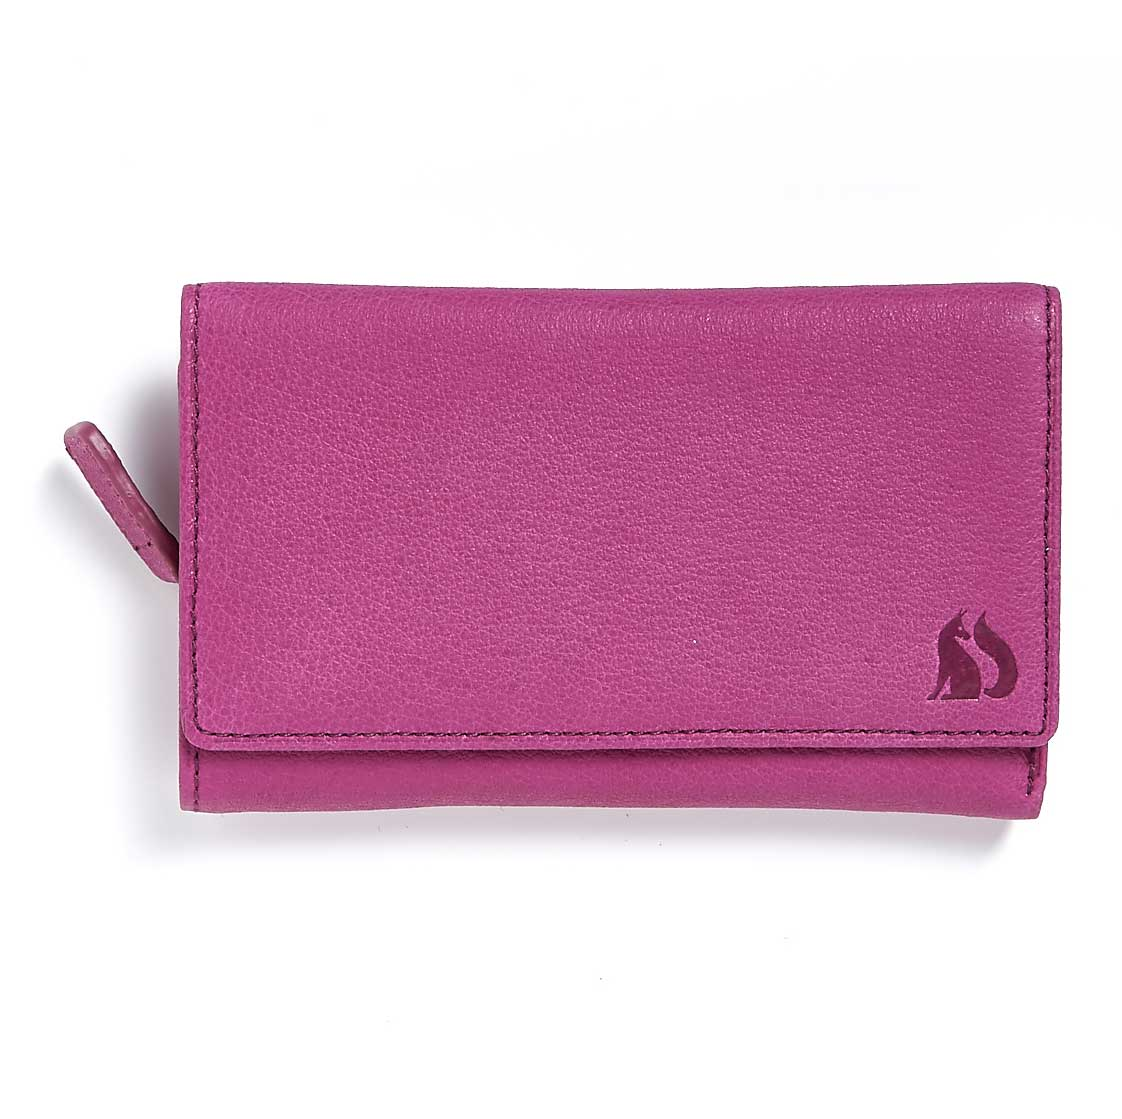 Foxfield Thirlmere Berry Leather Purse